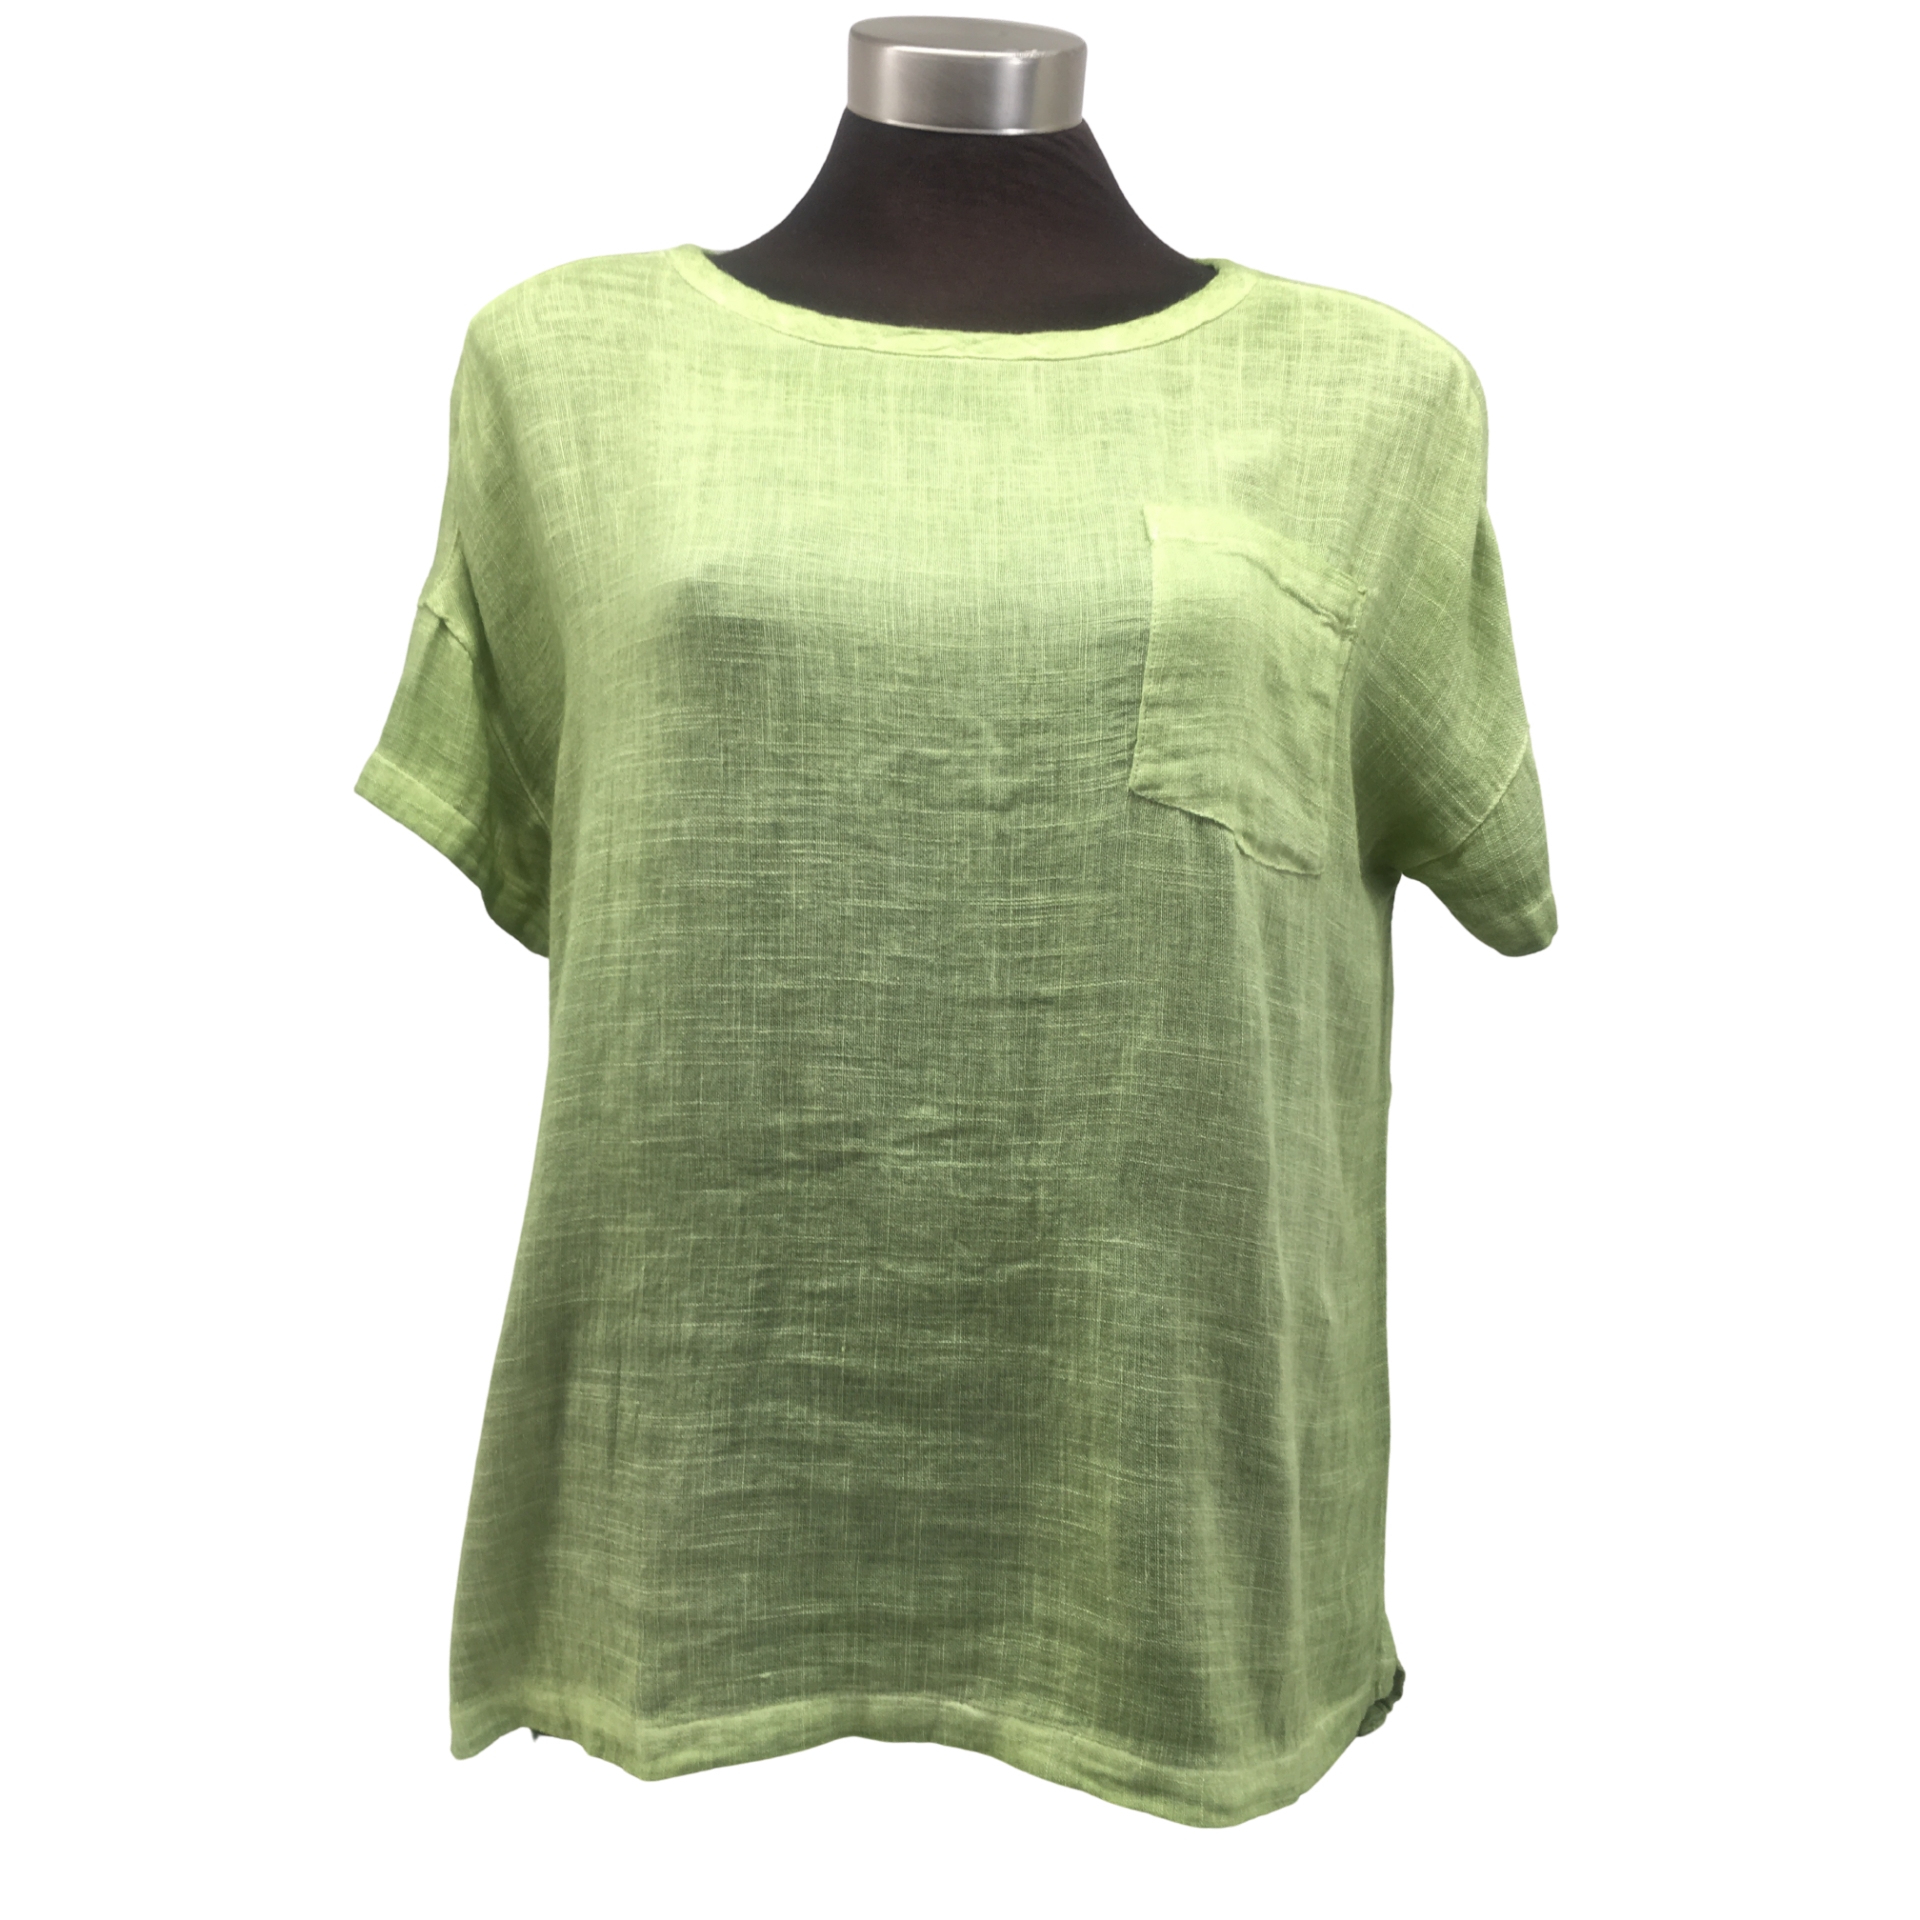 365 Days Pocket Linen Tee Top in Lime